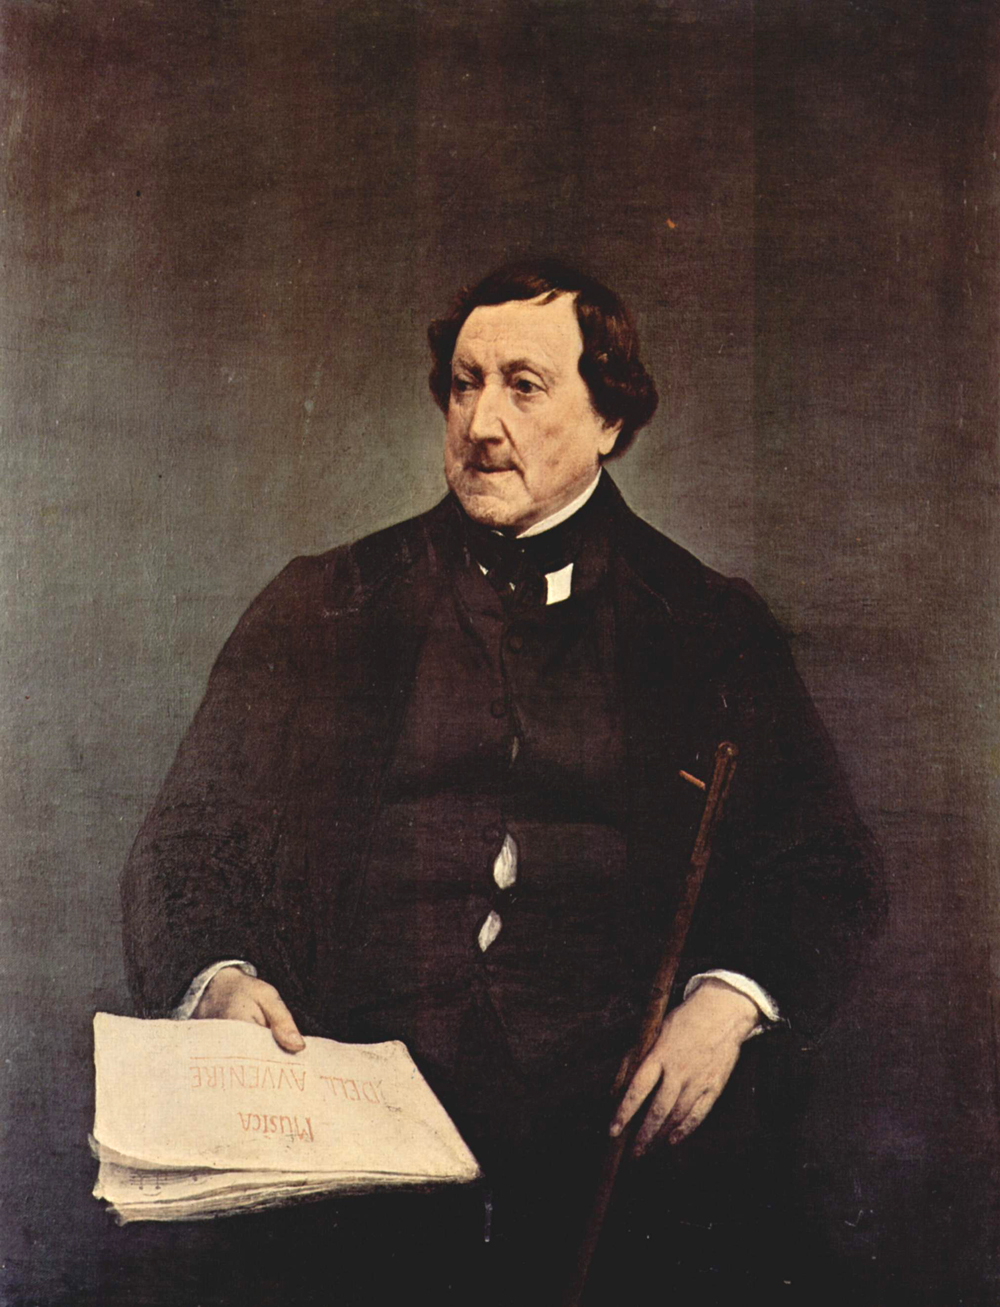 Francesco Hayez (1791-1882)  Portrait of Gioacchino Rossini   Oil on canvas, 1870  109 × 87 cm  Pinacoteca di Brera, Milan, Italy